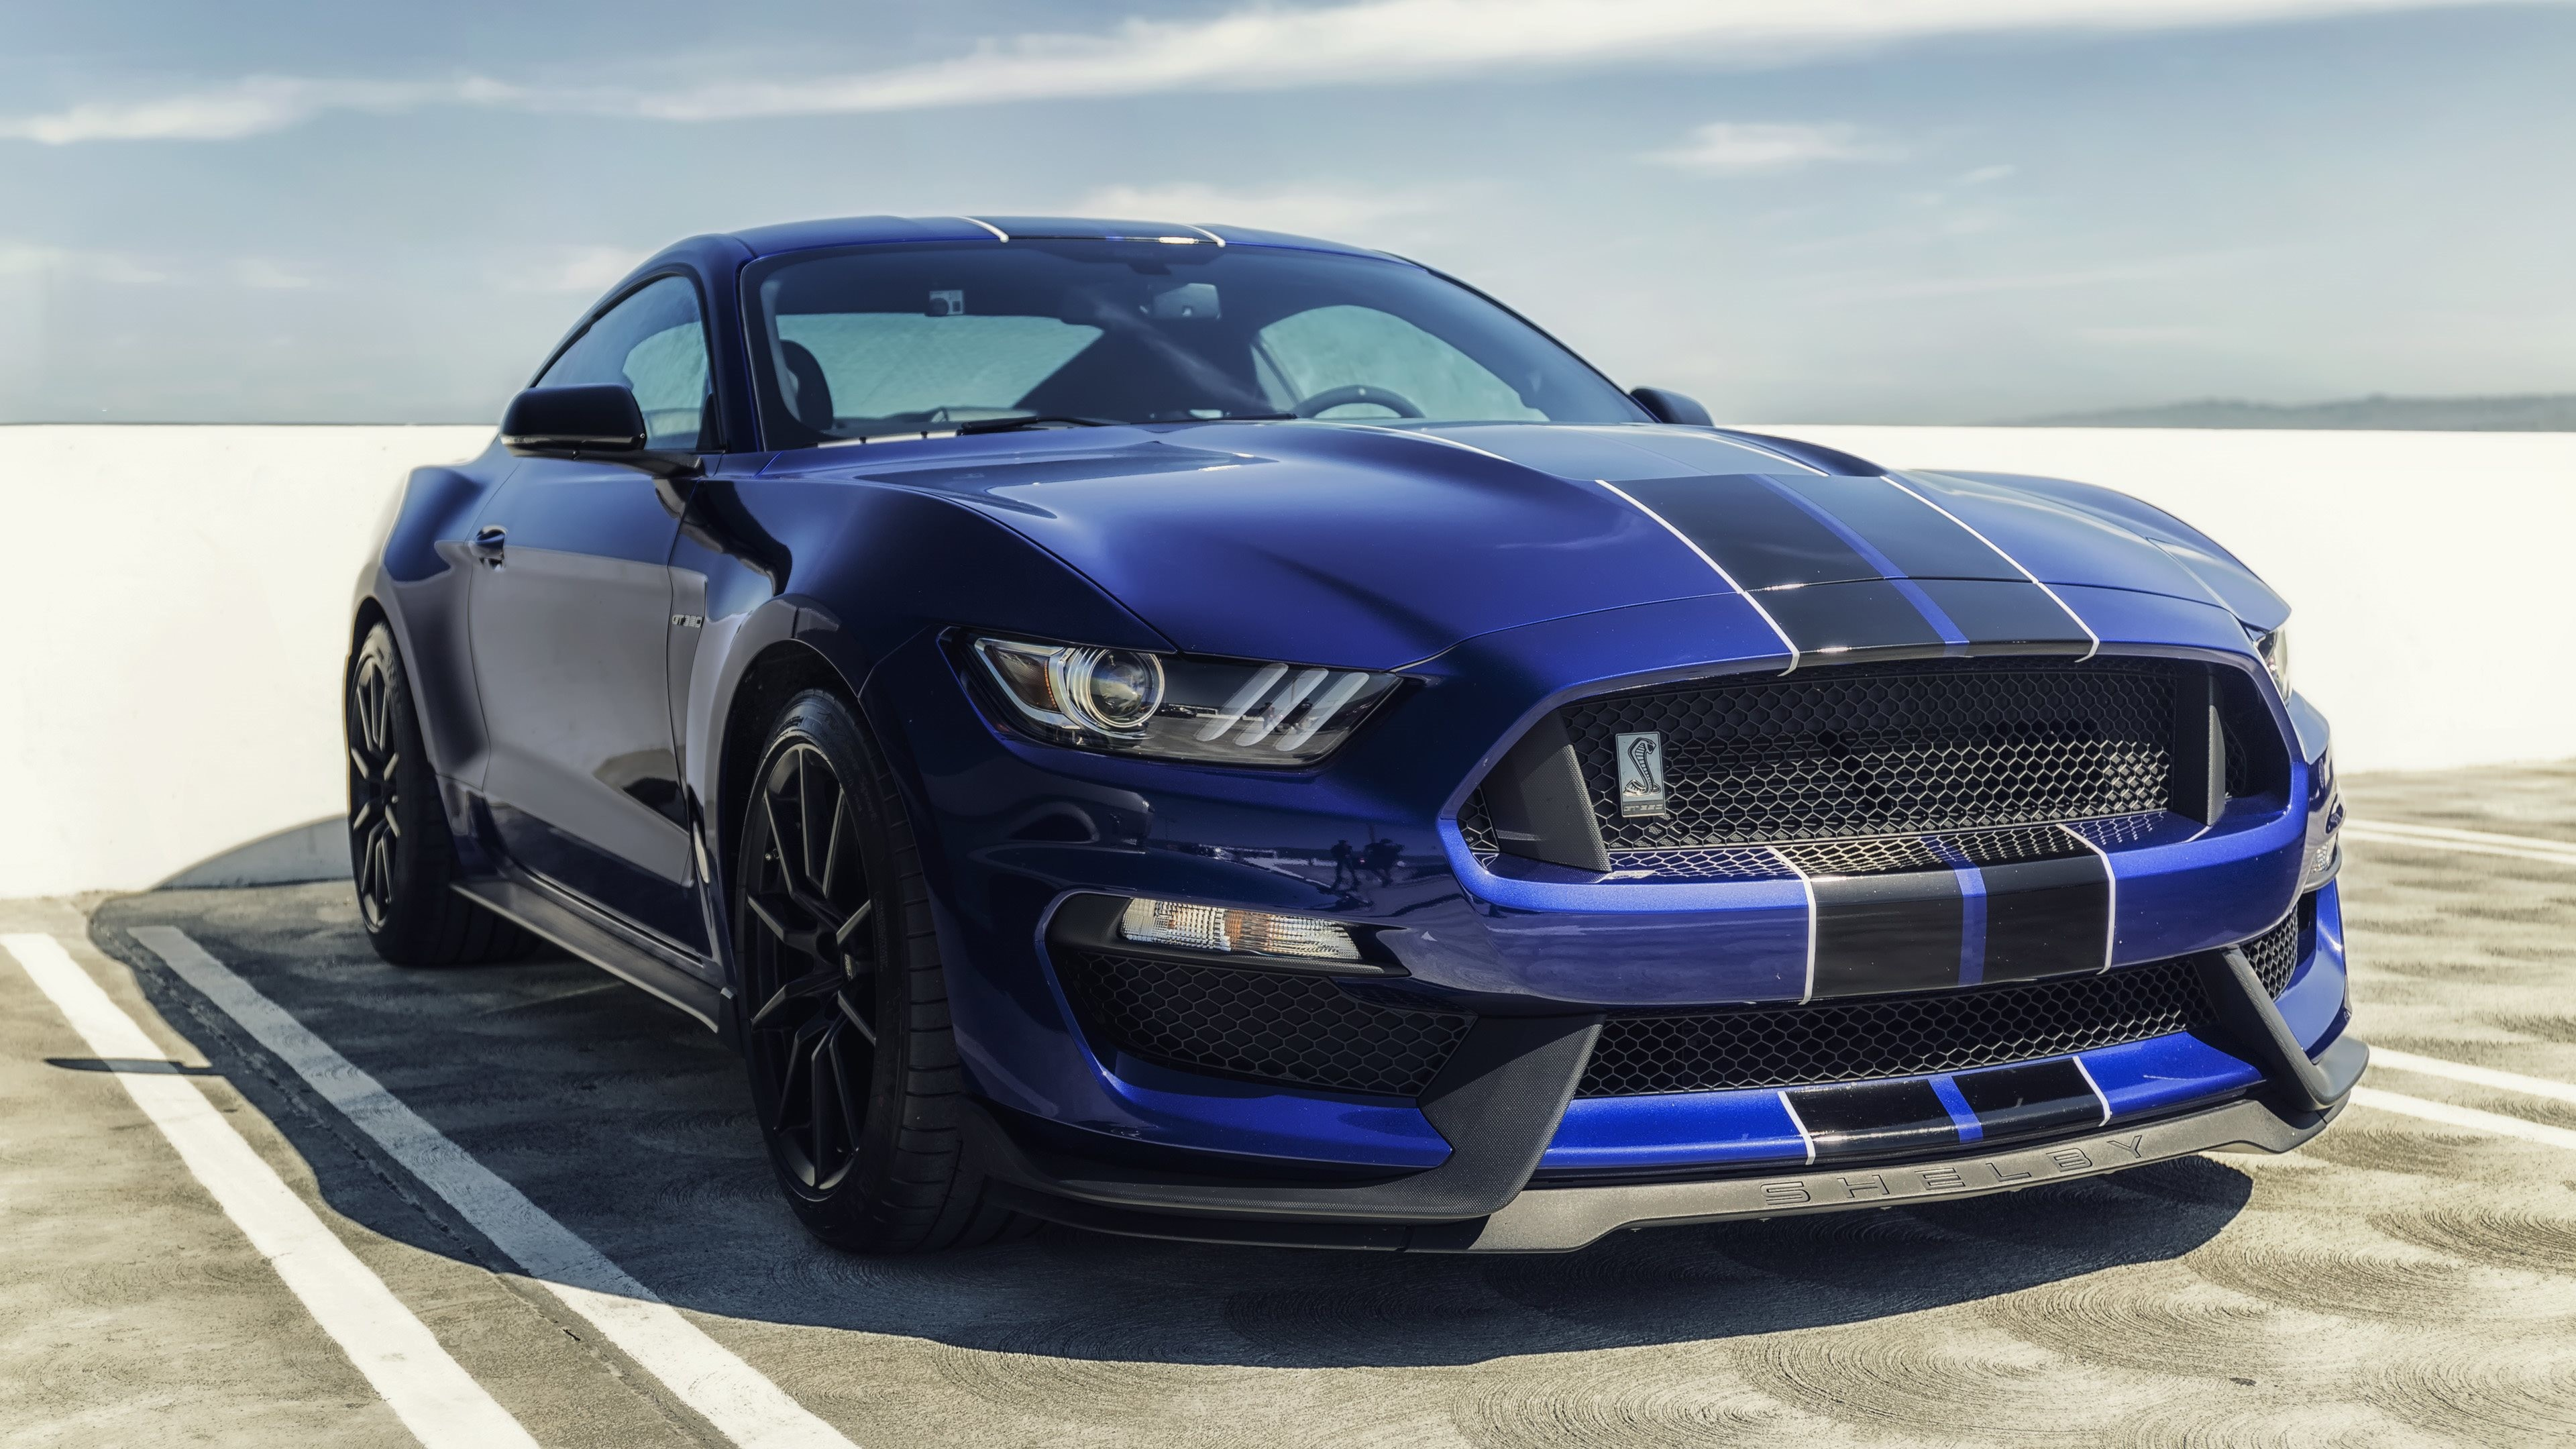 Res: 3840x2160, ford mustang shelby gt350 blue mustang sports cars 4k widescreen wallpaper